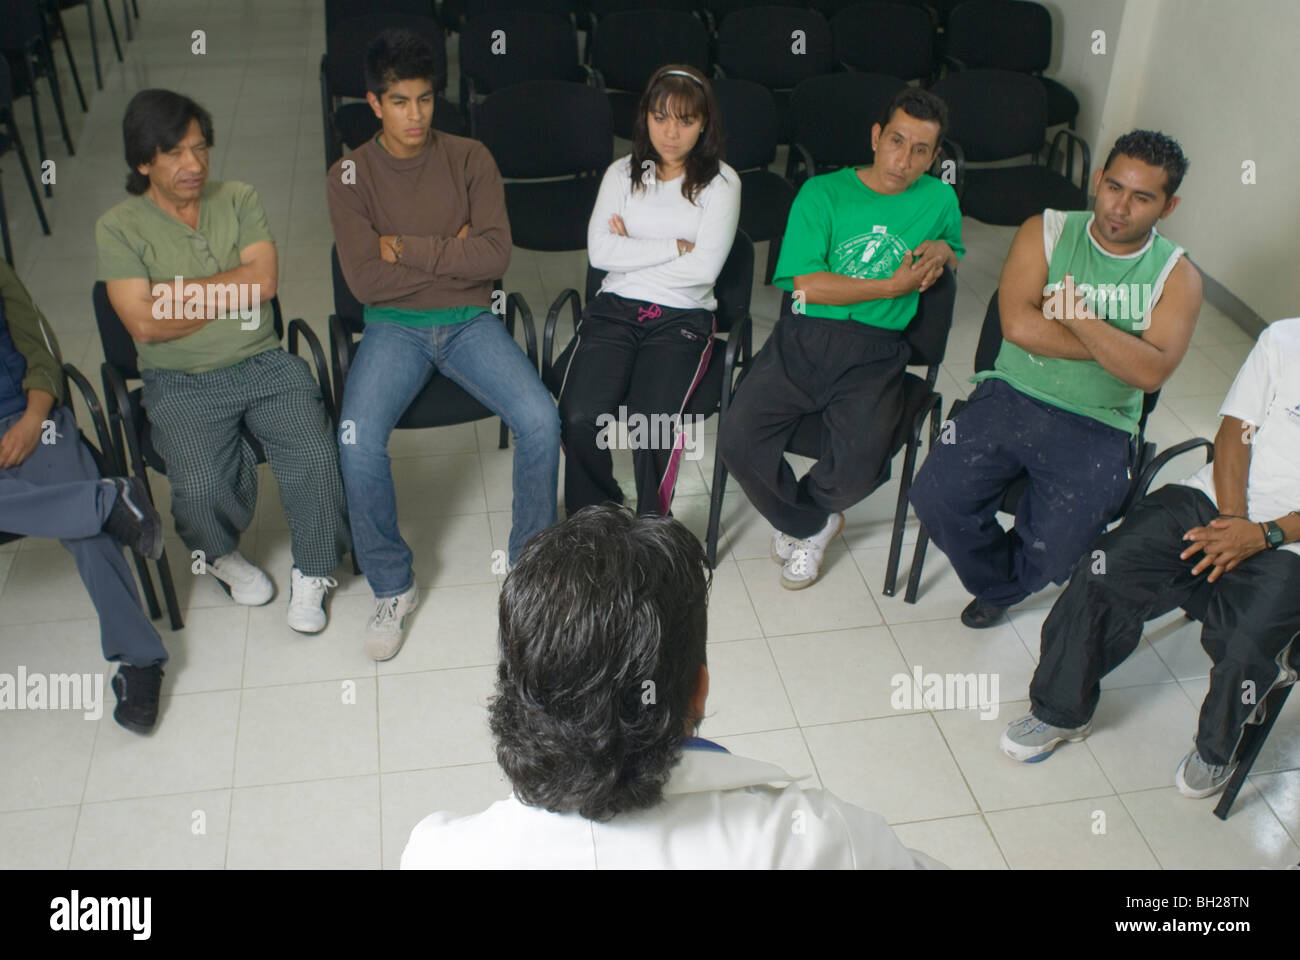 At the municipally-run Addiction Treatment Center in Ciudad Nezahualcóyotl, addicts engage in group therapy. - Stock Image